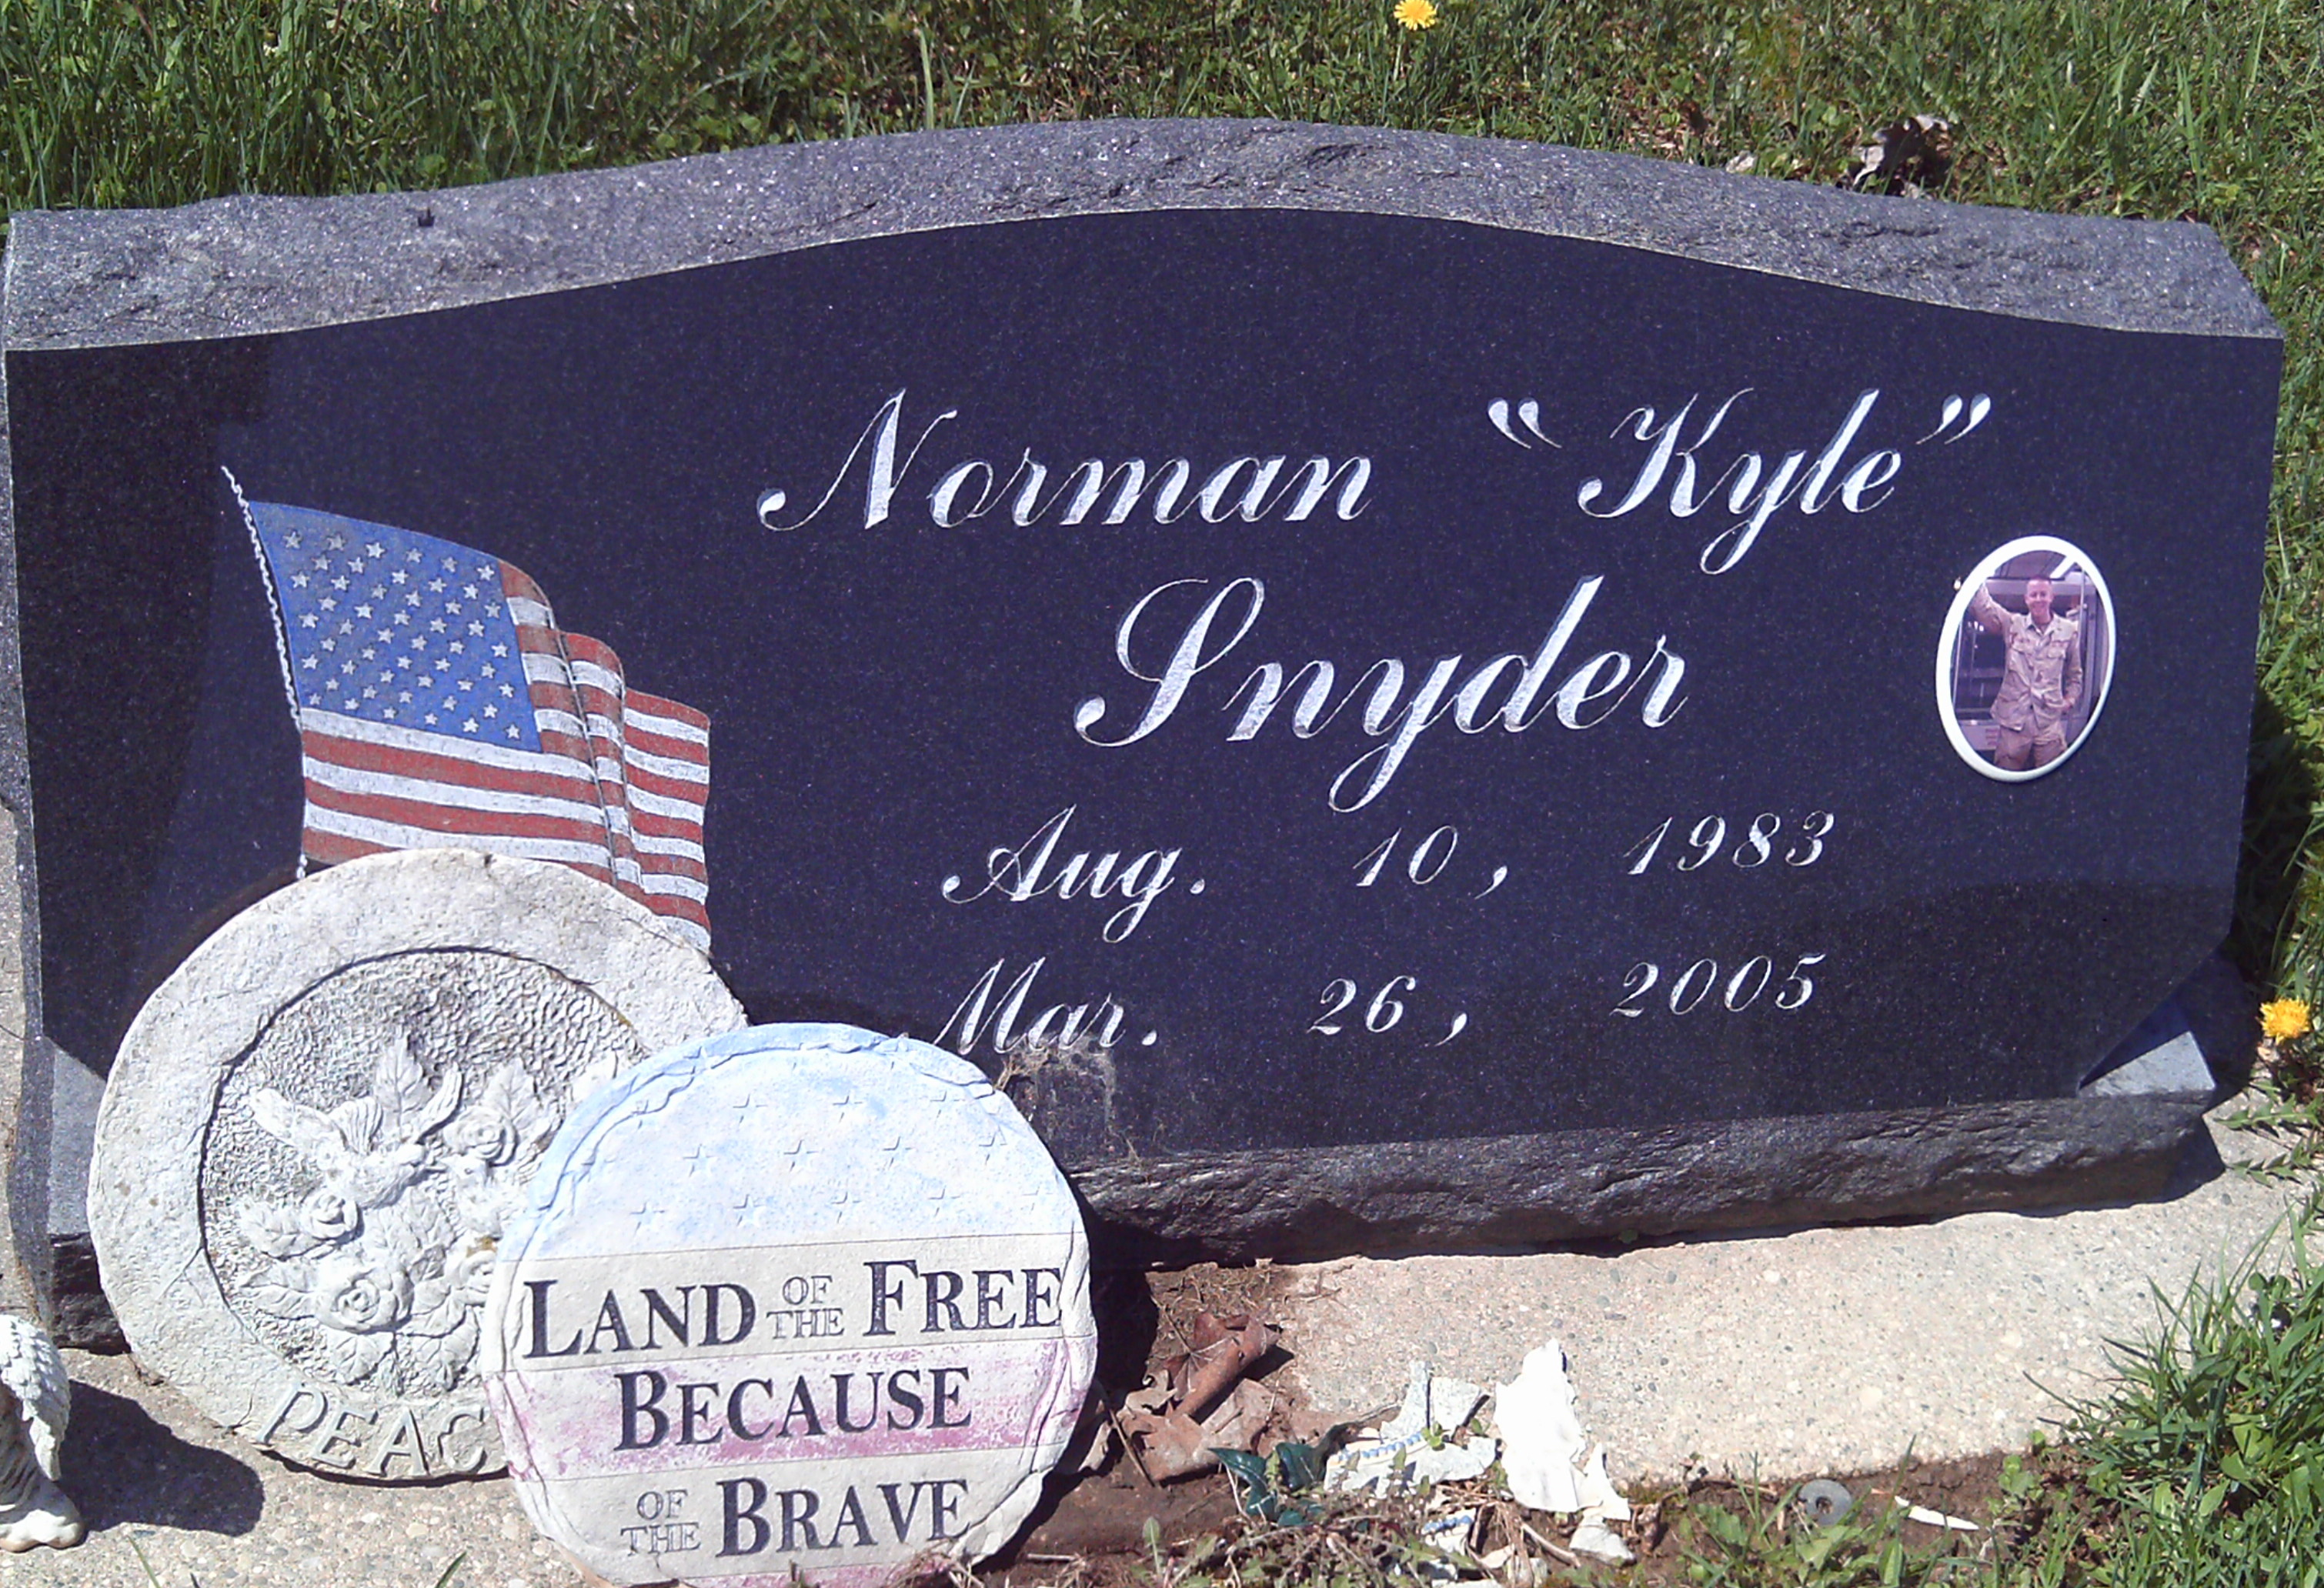 Norman Kyle Snyder